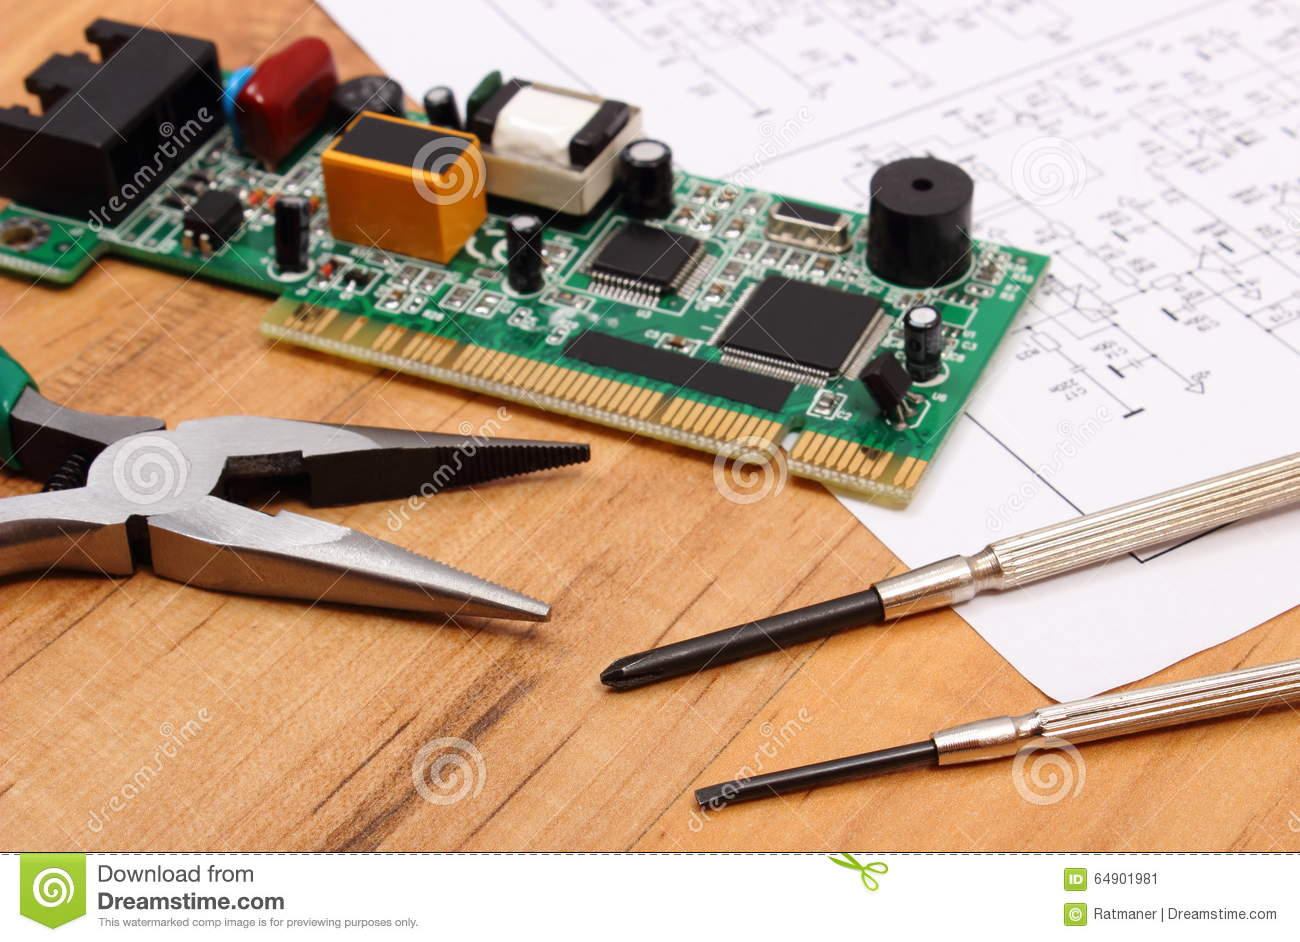 Printed Circuit Board Precision Tools And Diagram Of Electronics Motherboard Components Technology